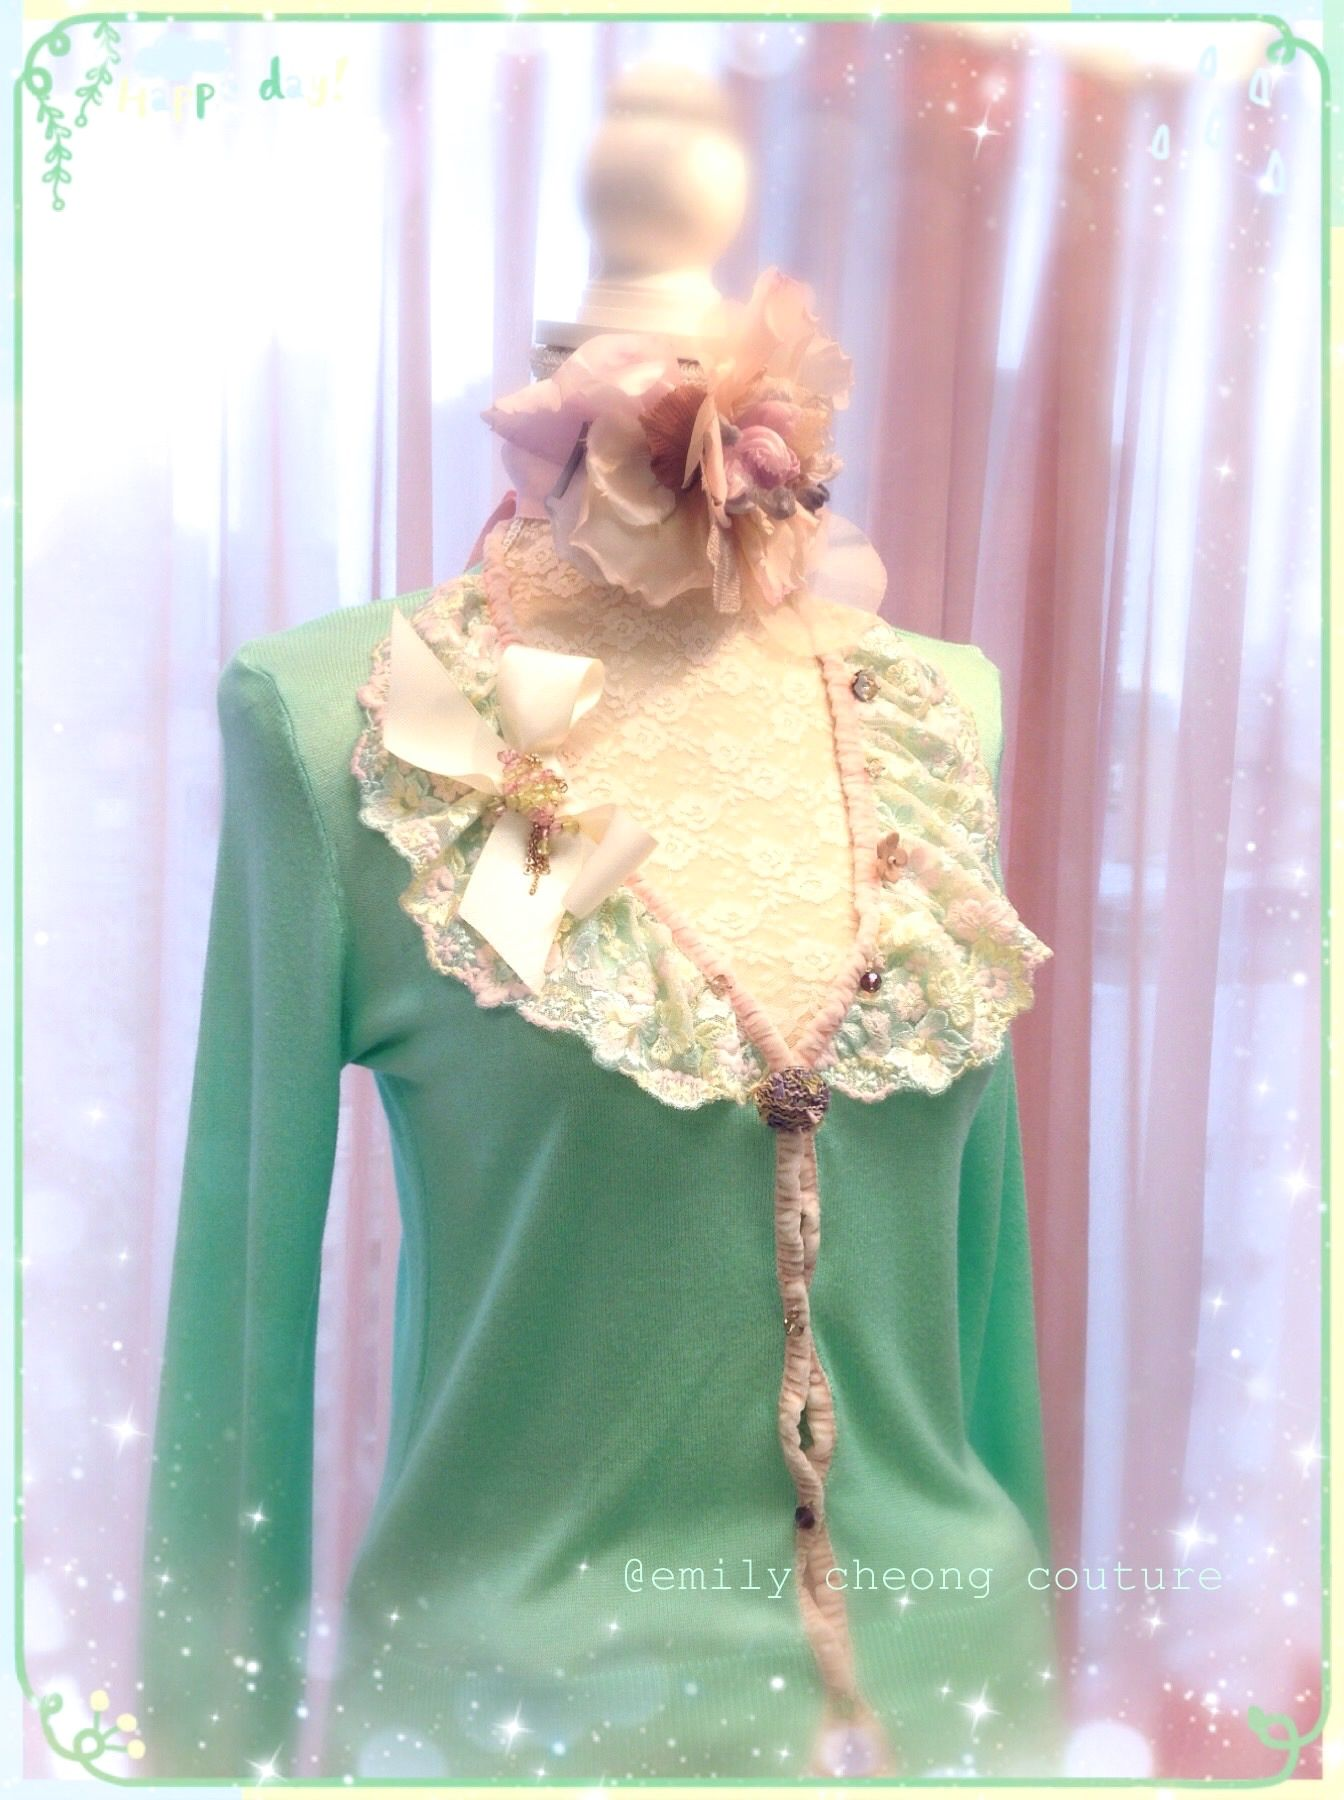 Fairytale Collection - green mint melon spring top  leather designer couture  lace frenchlace chic classy fashion womenswear ladieswear vintage high-fashion fashion cardigan https://www.facebook.com/emilycheongcouture